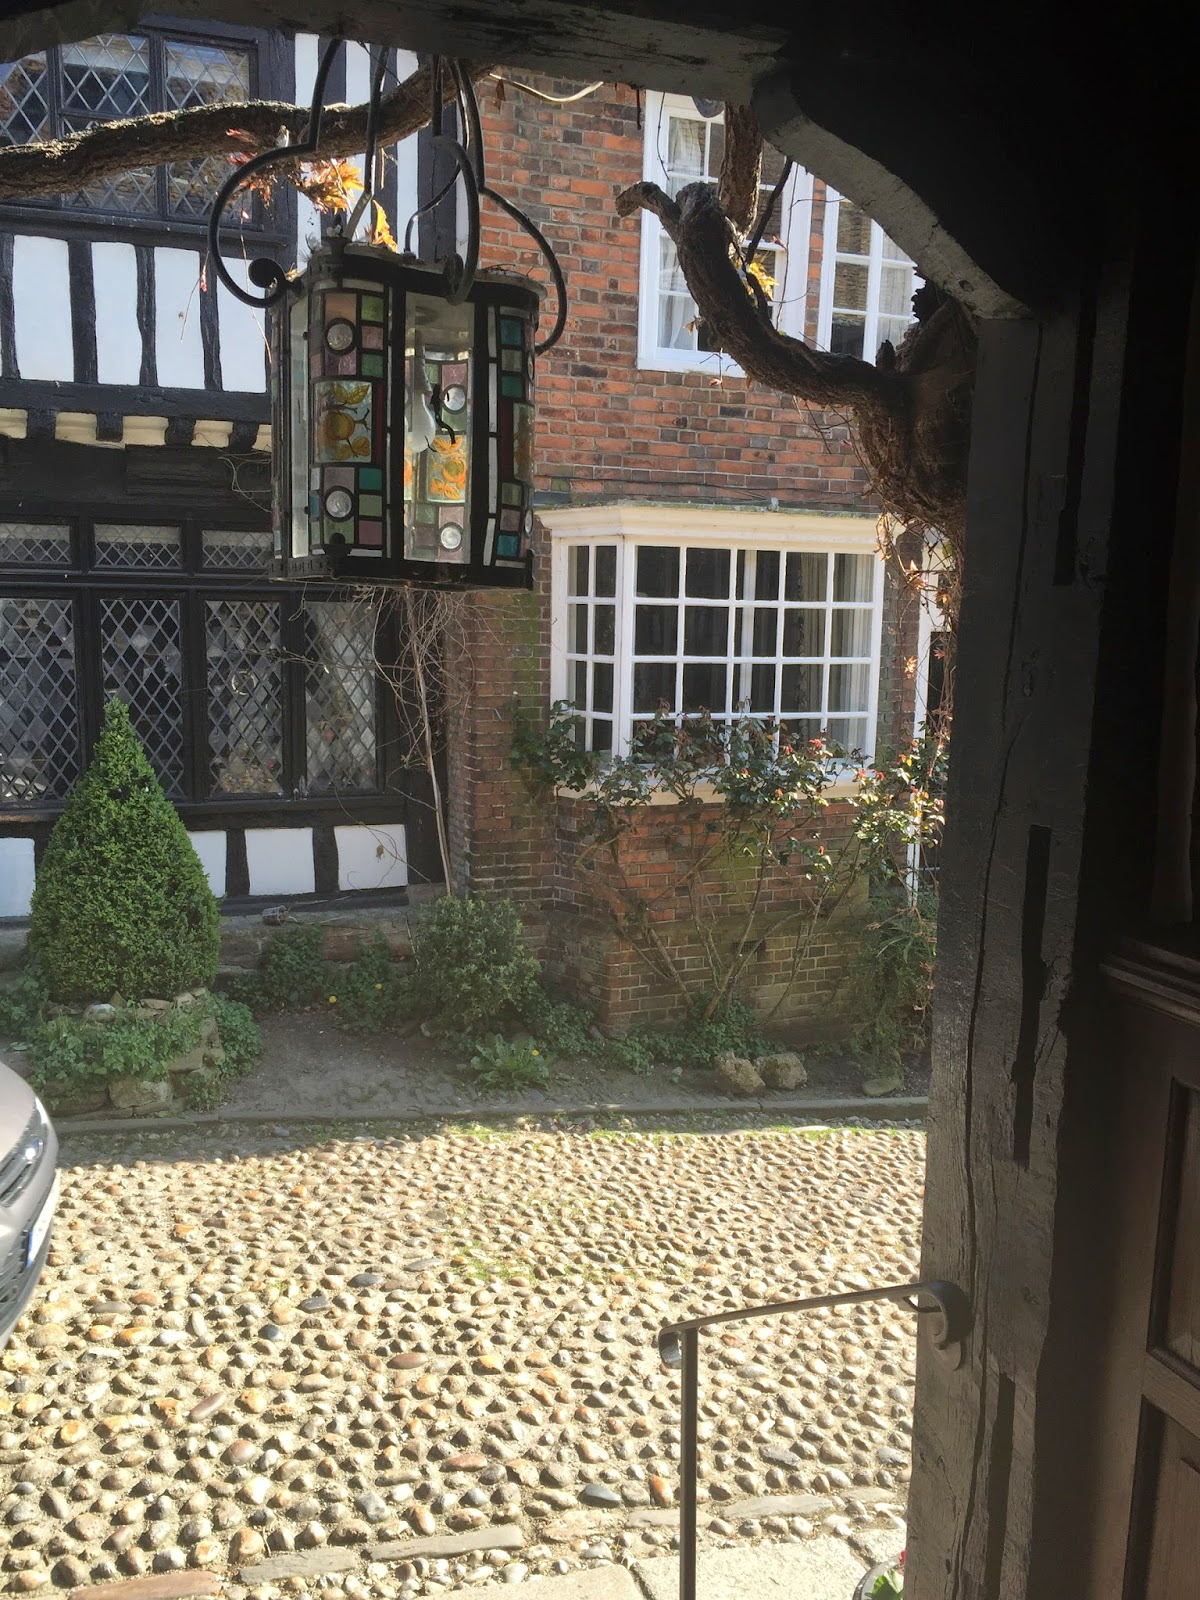 View from the Mermaid Inn, Rye, Sussex